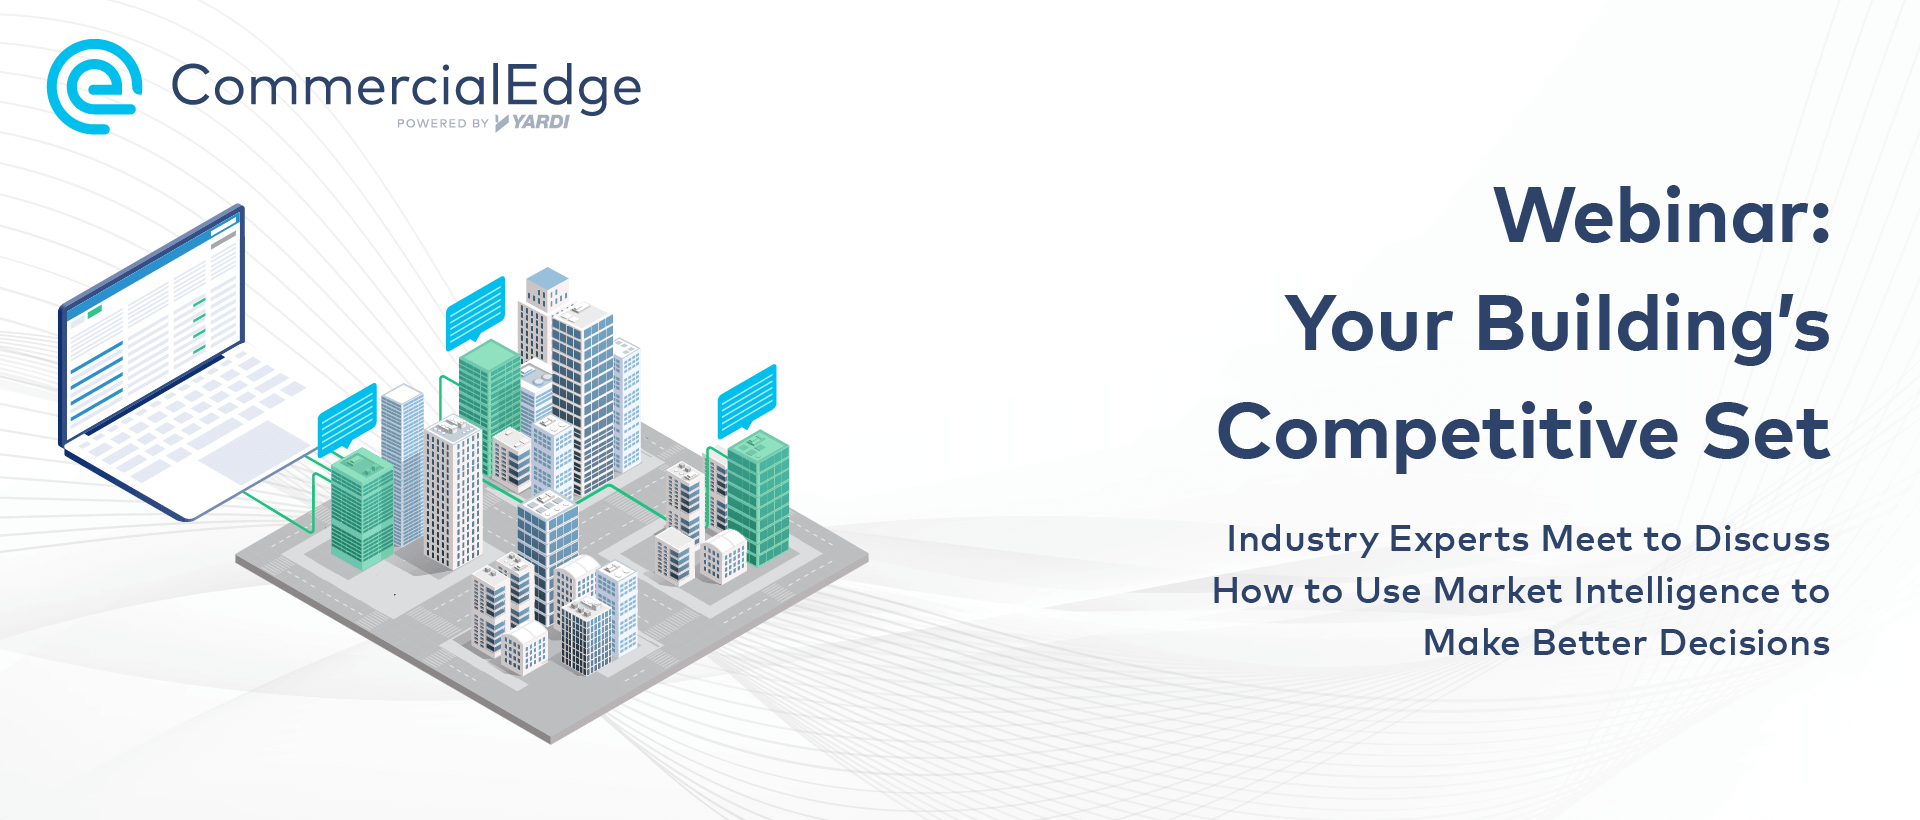 Your Building's Competitive Set: Industry Experts Meet to Discuss How to Use Market Intelligence to Make Better Decisions